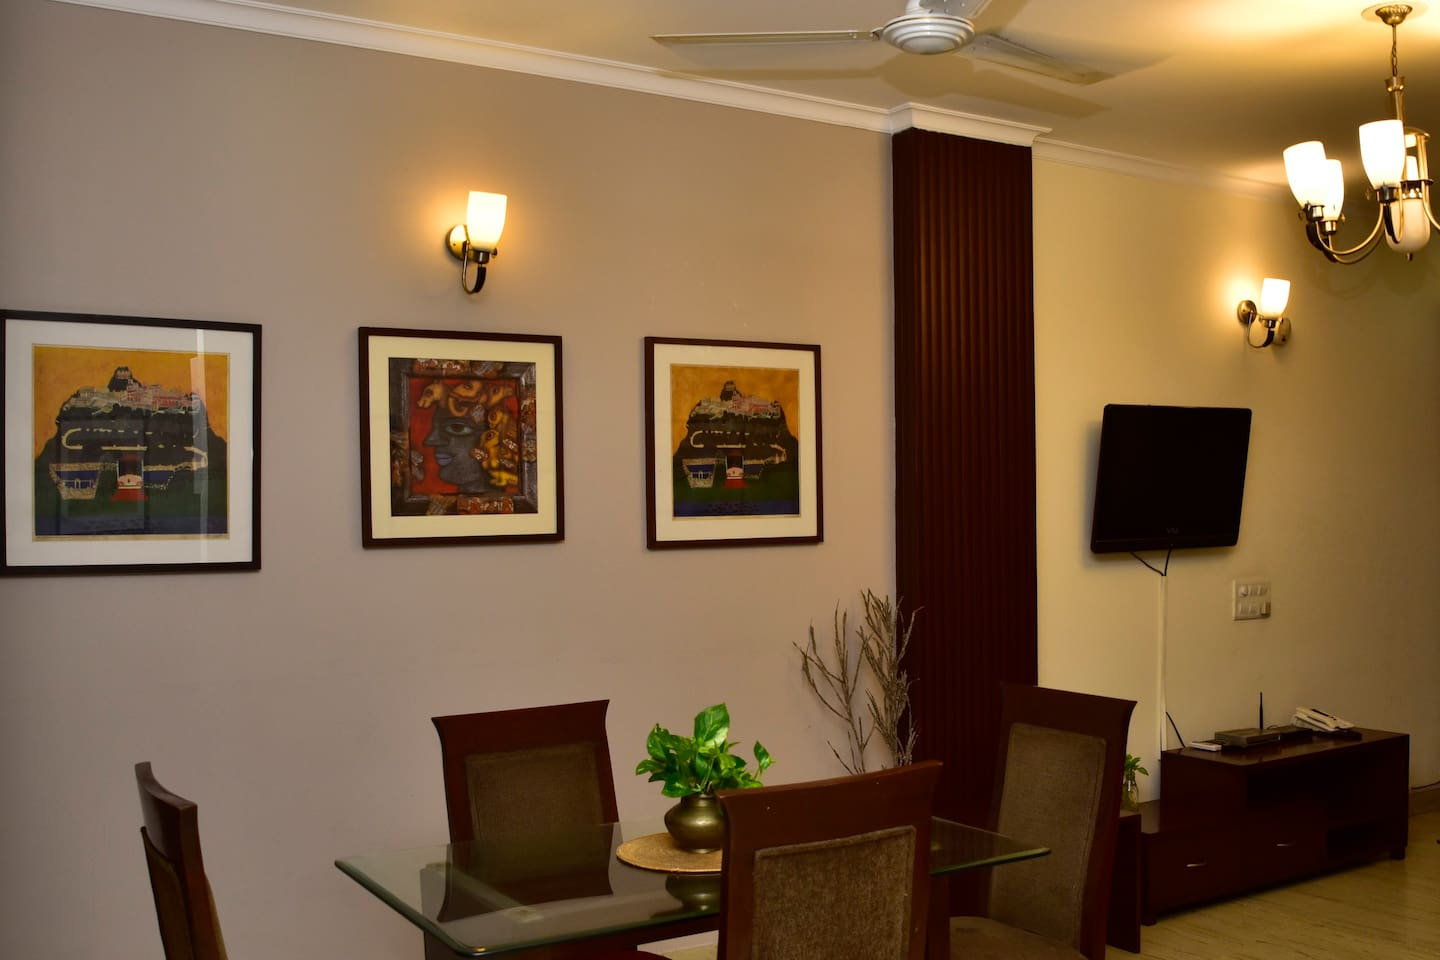 Homely comfortable Environment